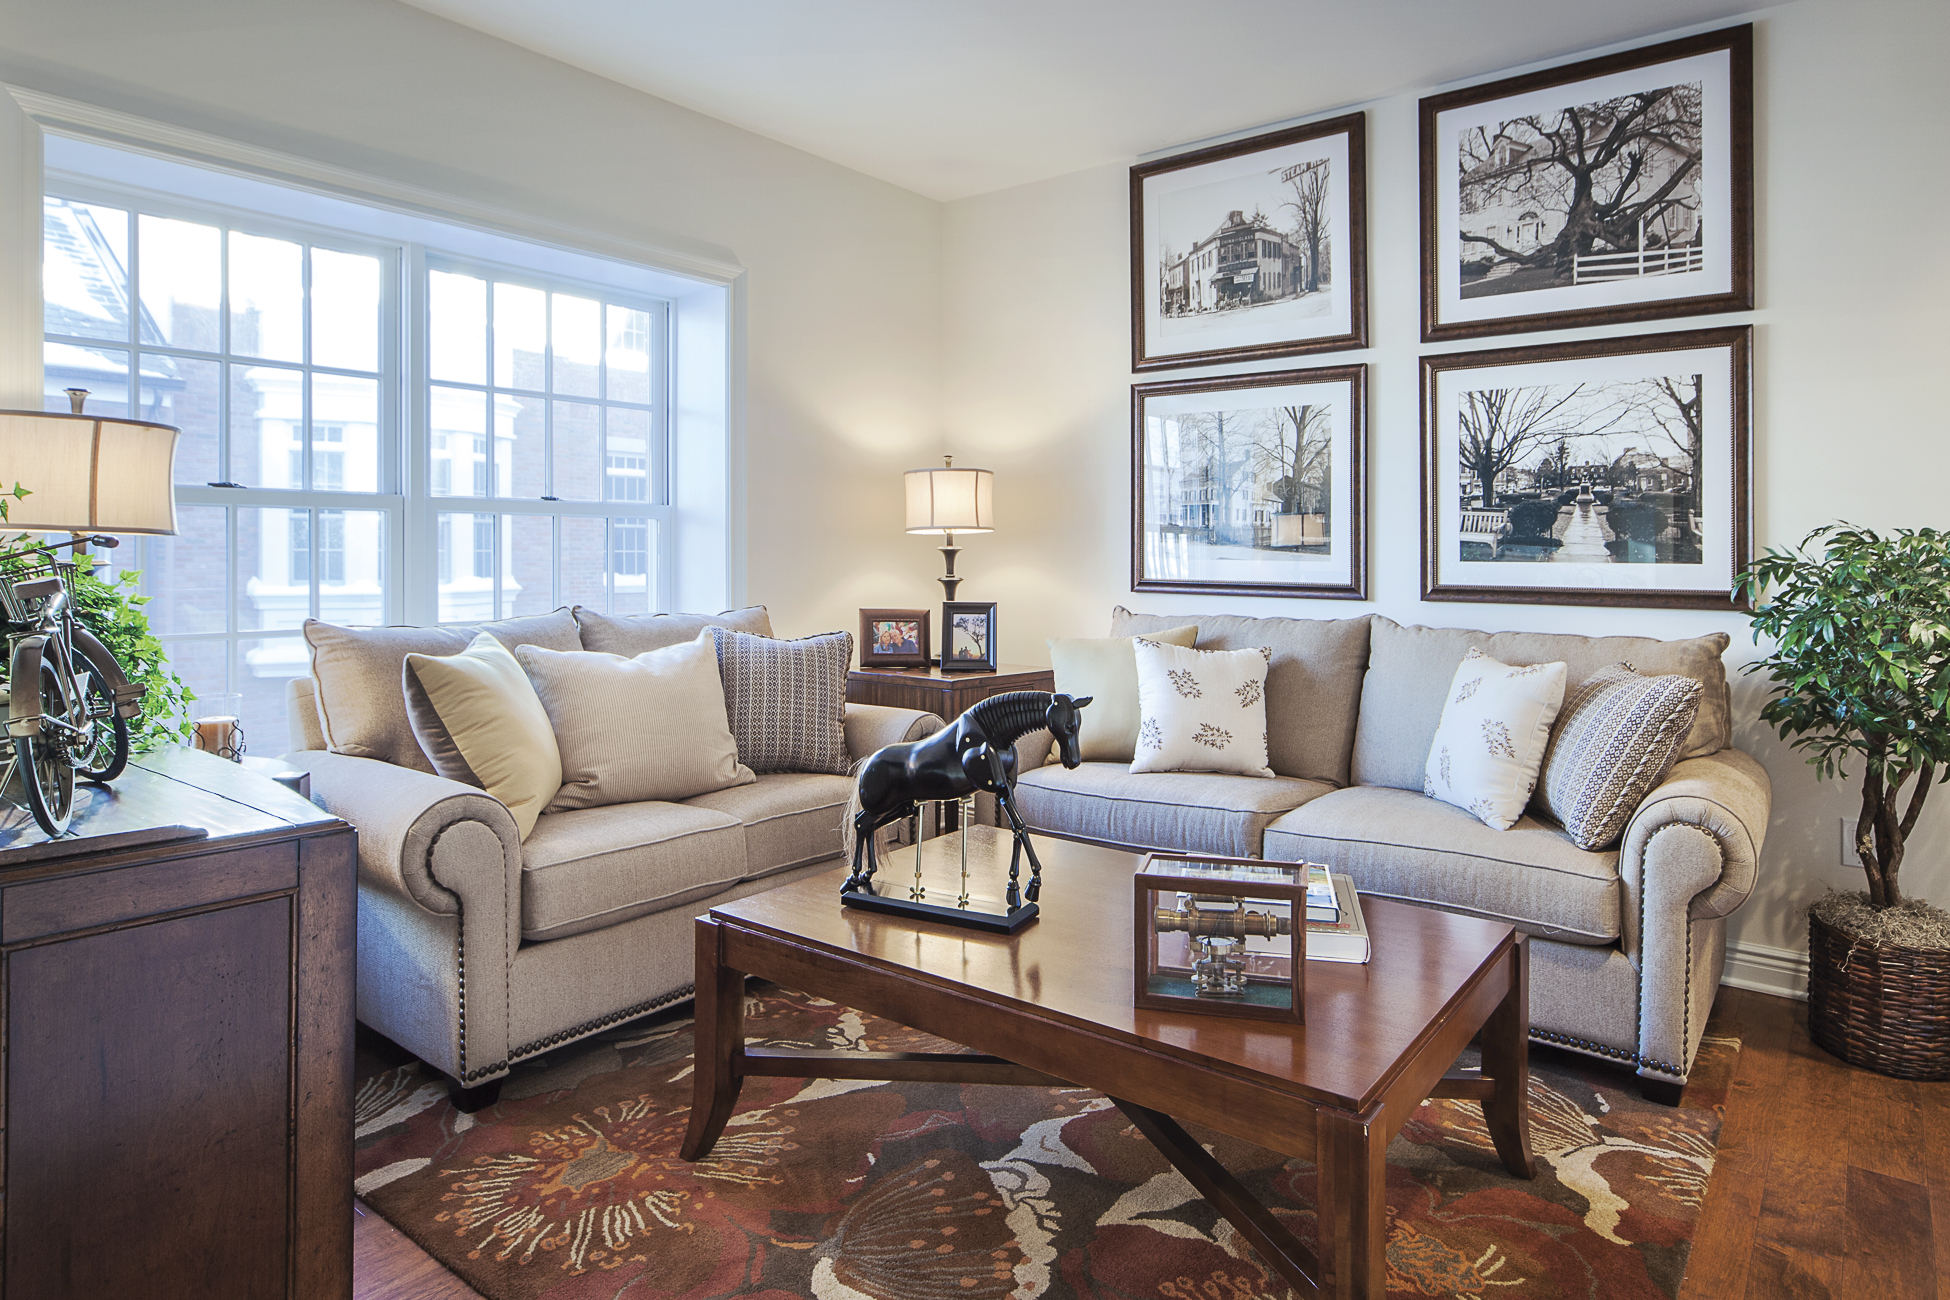 Additional photo for property listing at Luxurious Townhome in the Heart of Princeton 22 Paul Robeson Place Princeton, Nueva Jersey 08540 Estados Unidos